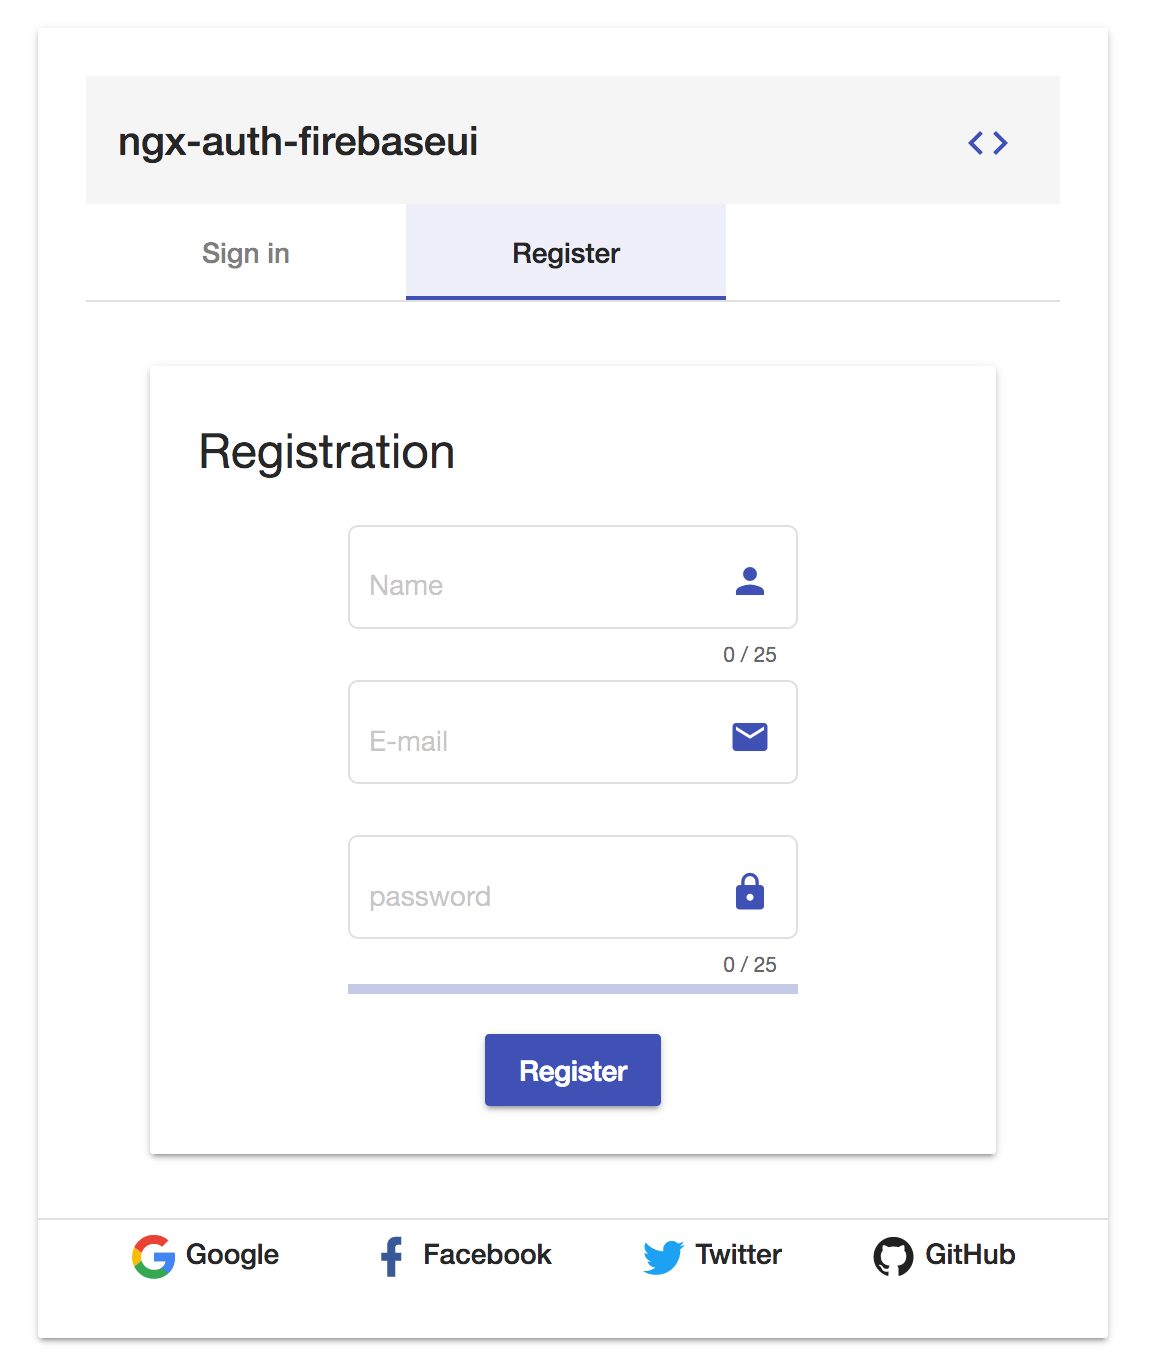 disable guests option with ngx-auth-firebaseui